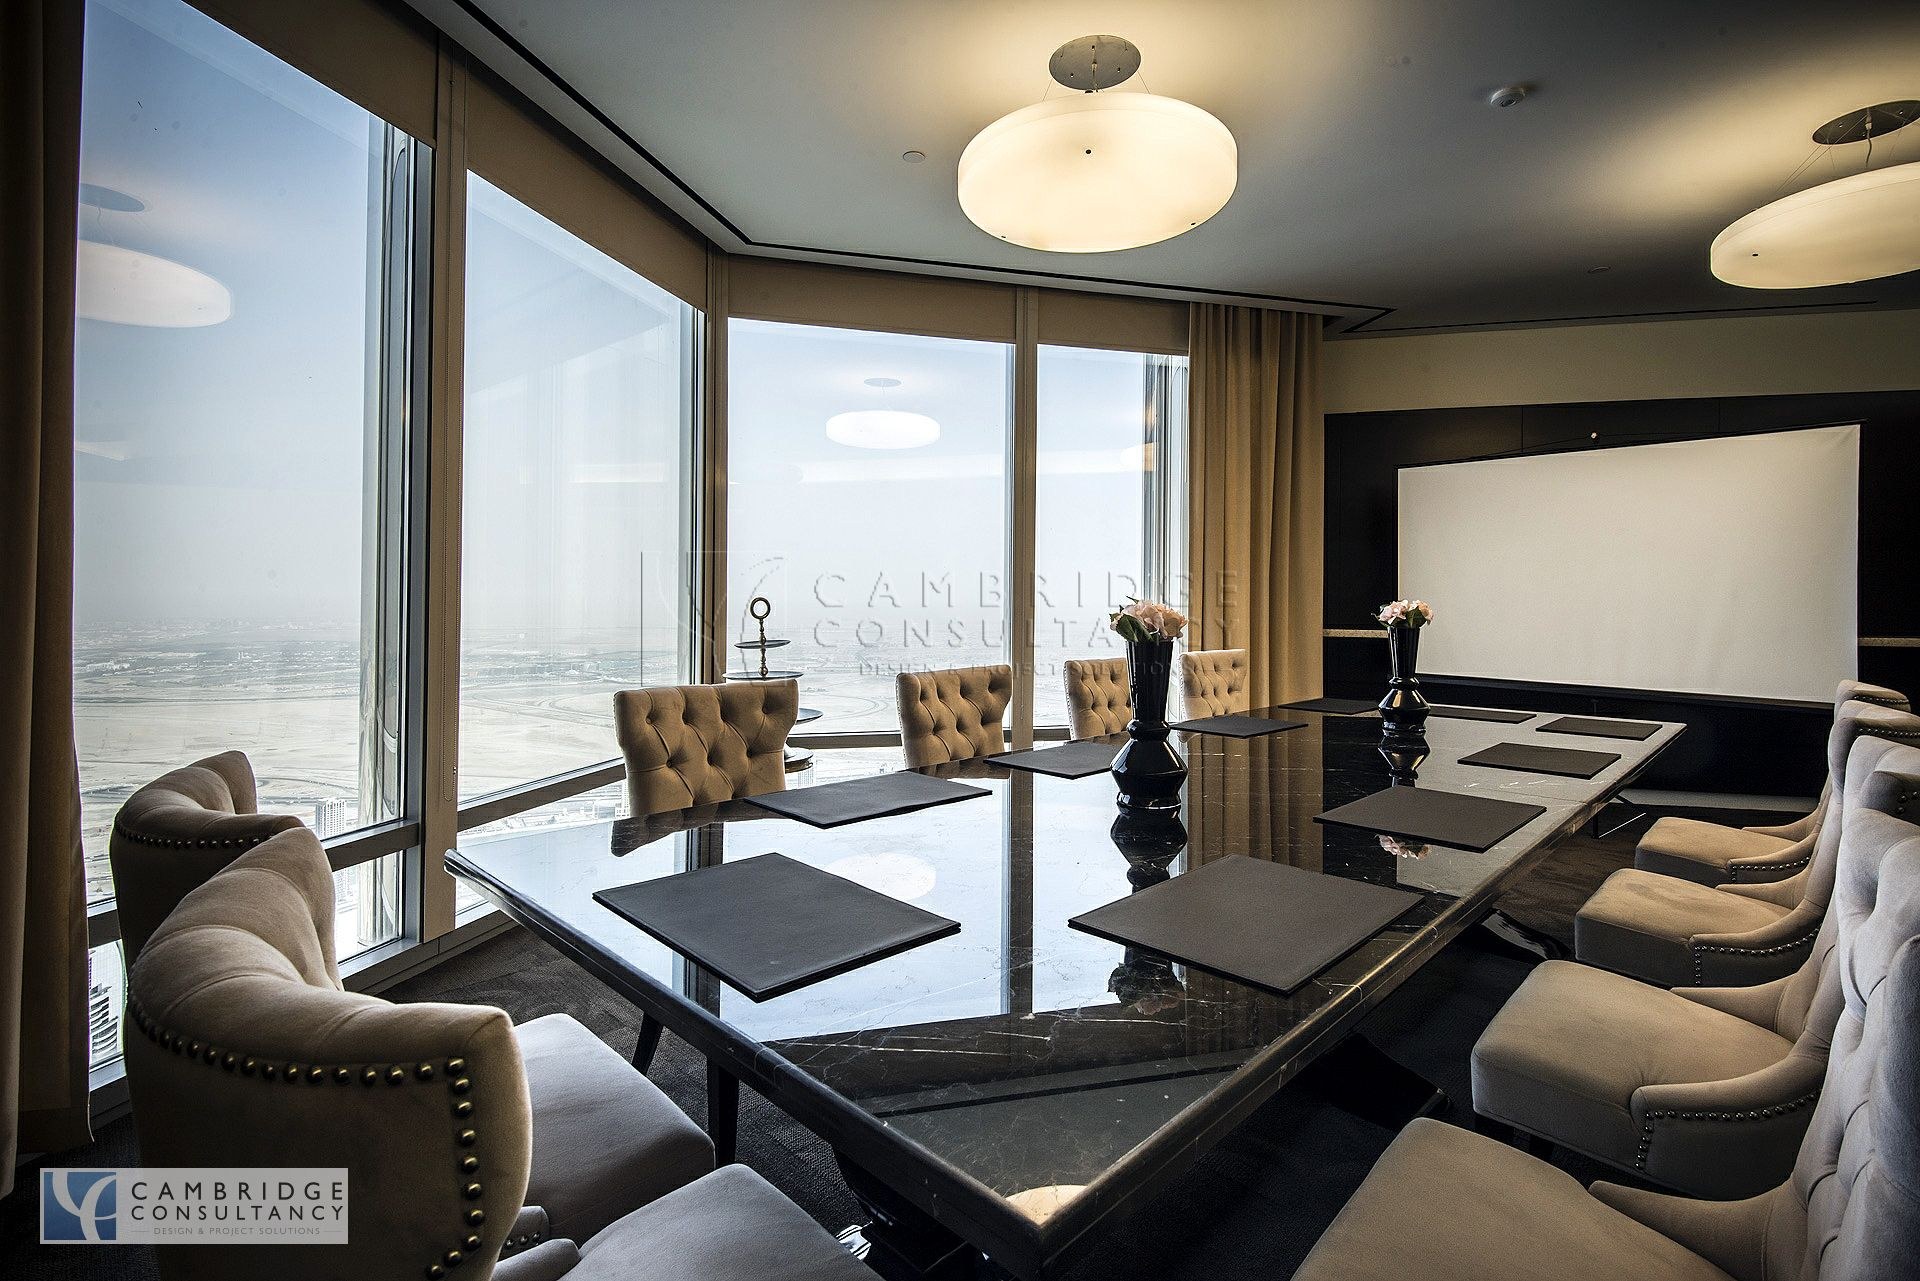 Honest re office inside burj khalifa full floor designed for Luxury office interior